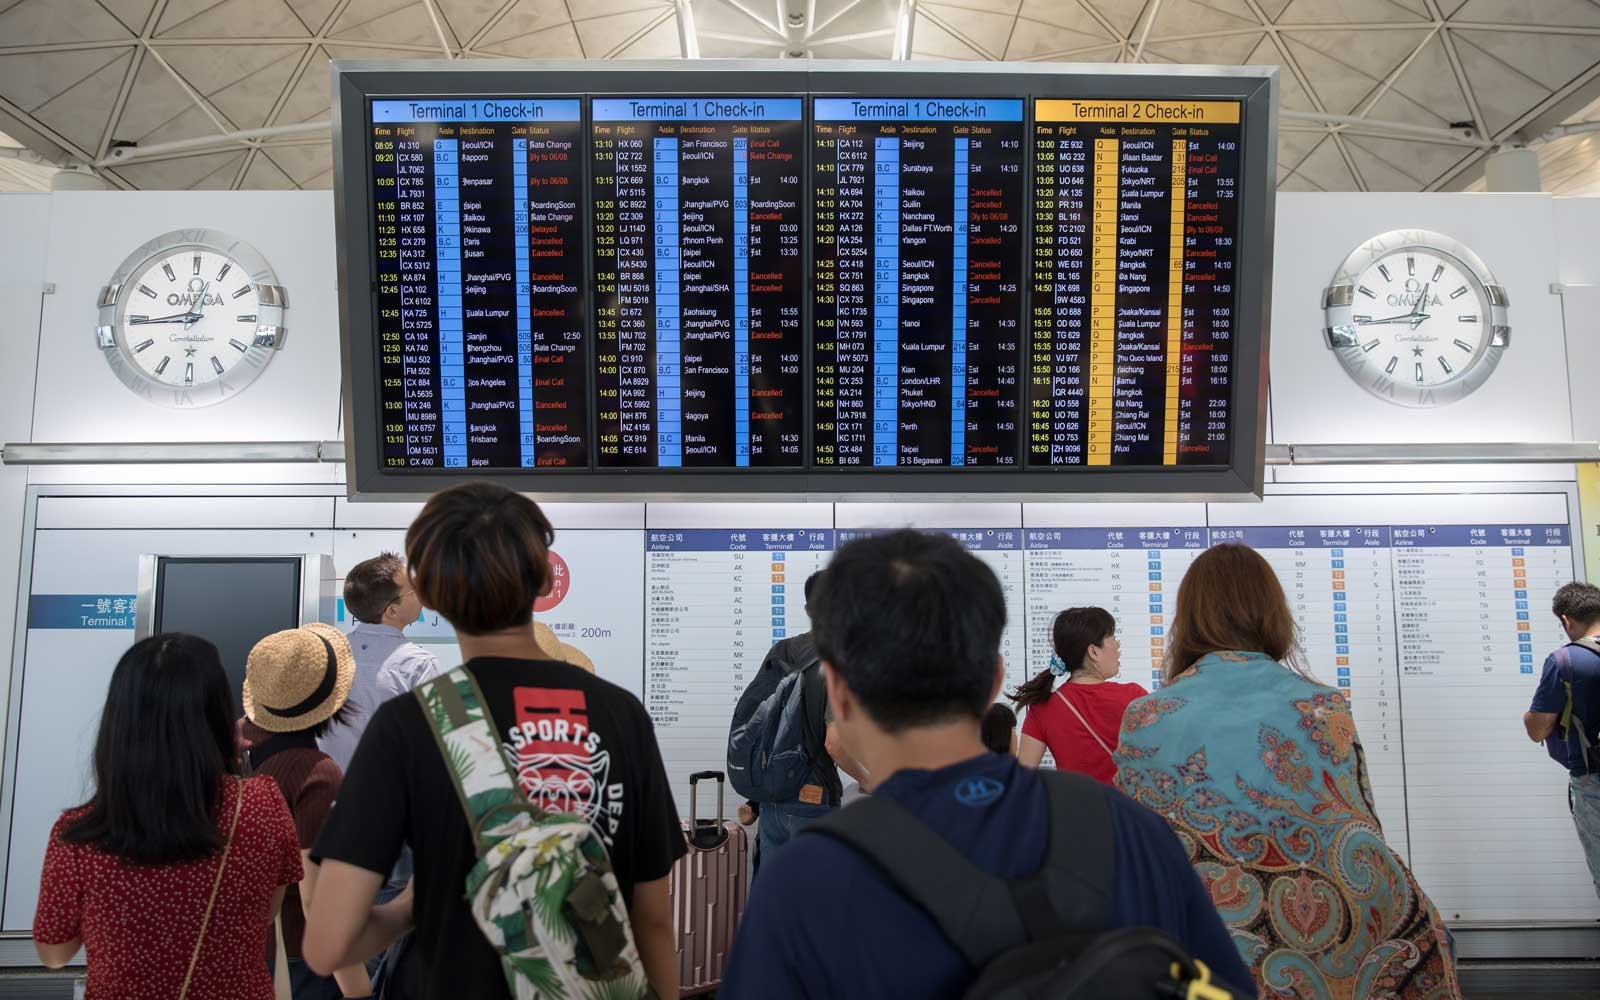 Passengers at Hong Kong International Airport during city-wide strike, China - 05 Aug 2019